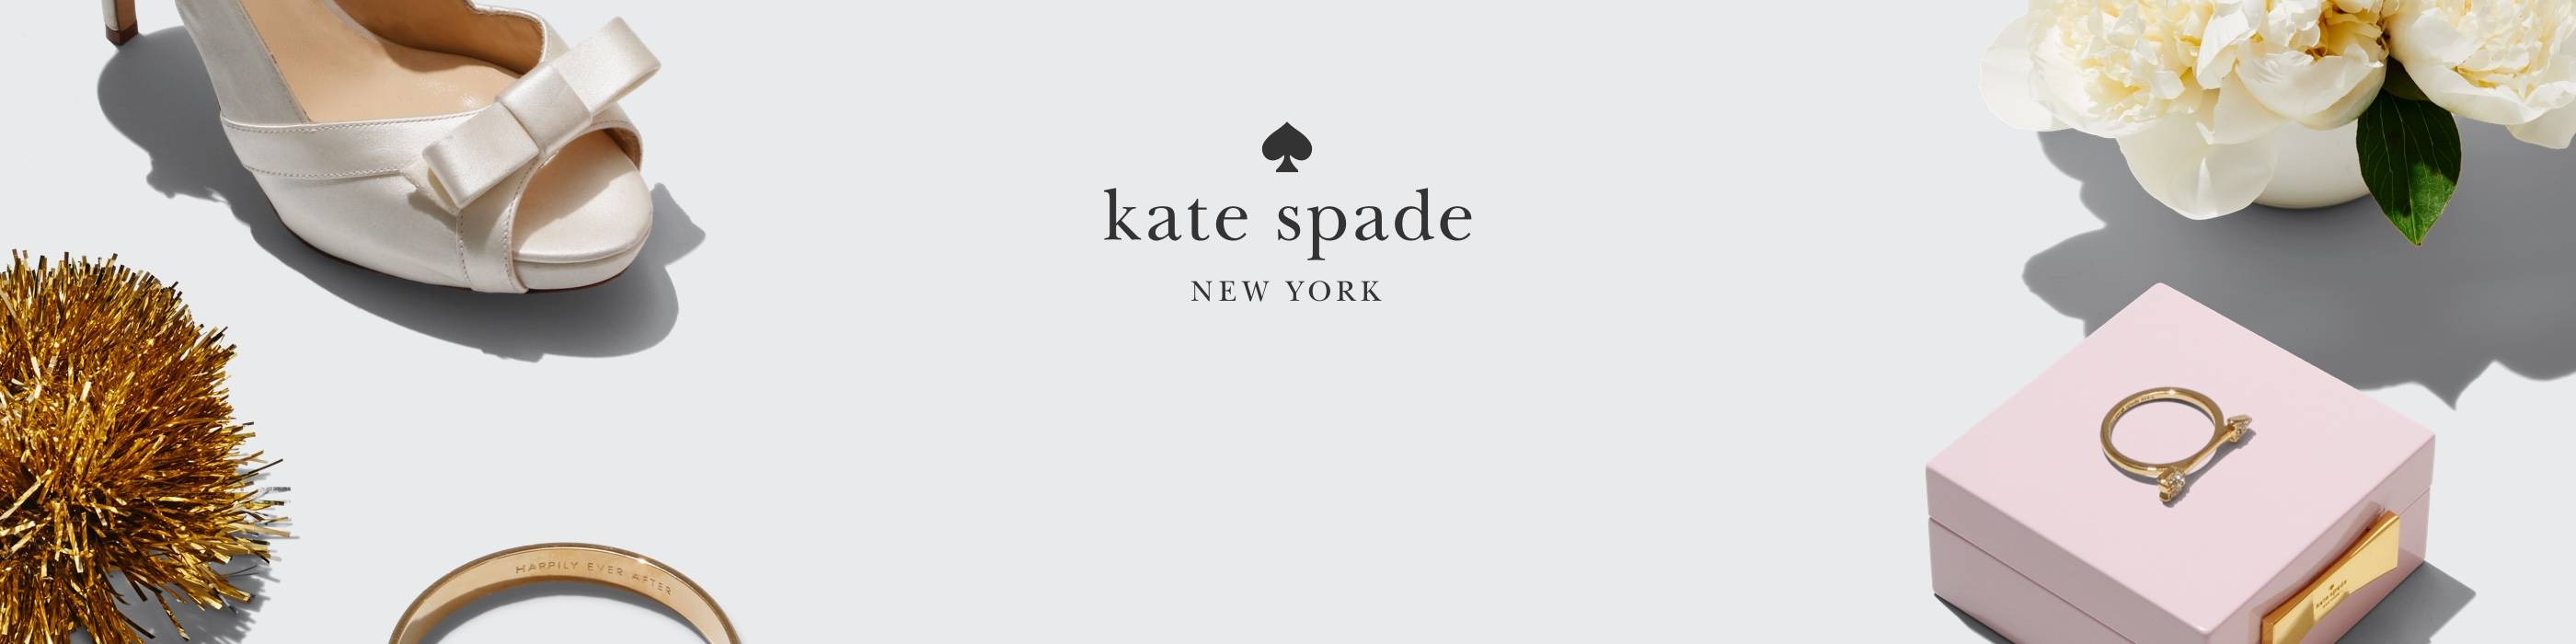 Image result for paperless post kate spade